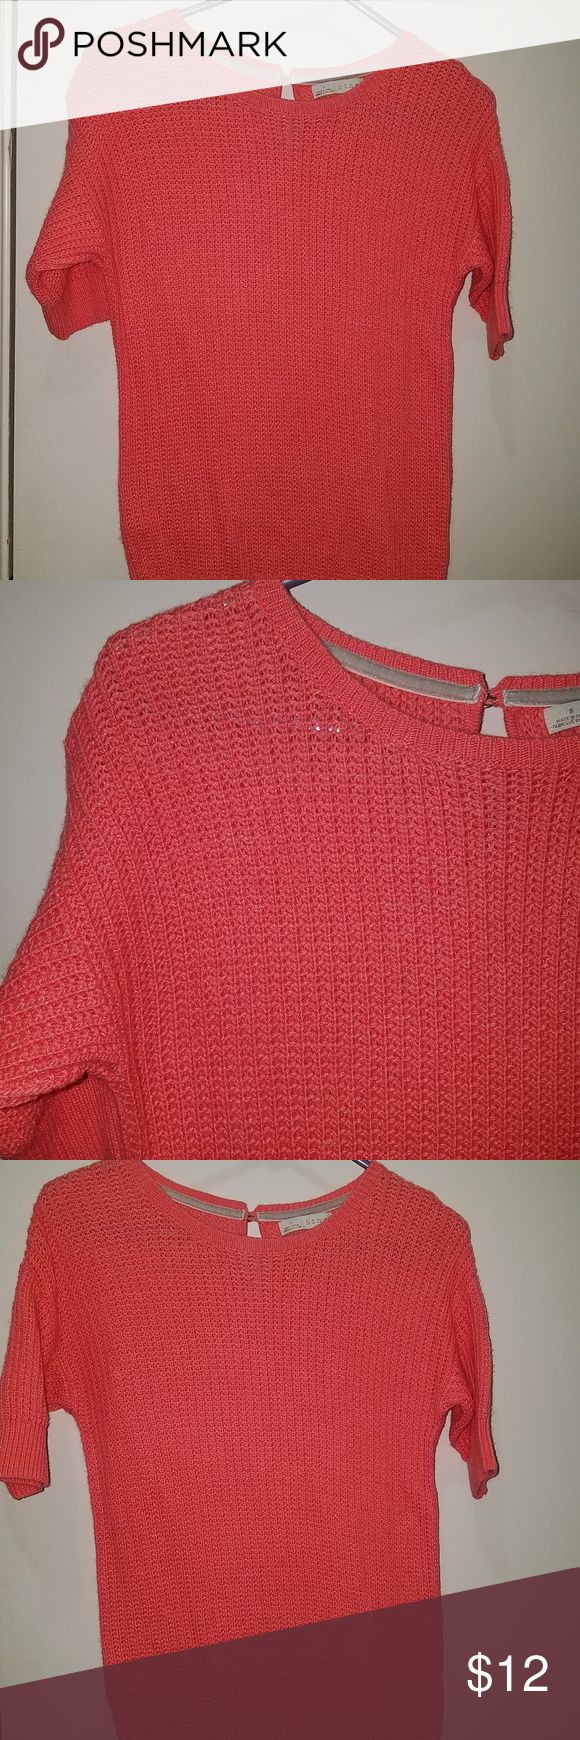 Small Hinge Short Sleeve Sweater Pink Coral very gently used, no holes or stains.   nylon blend, hand  washable  armpit to armpit 17 length 24.5 10/29 - D17 hinge Sweaters